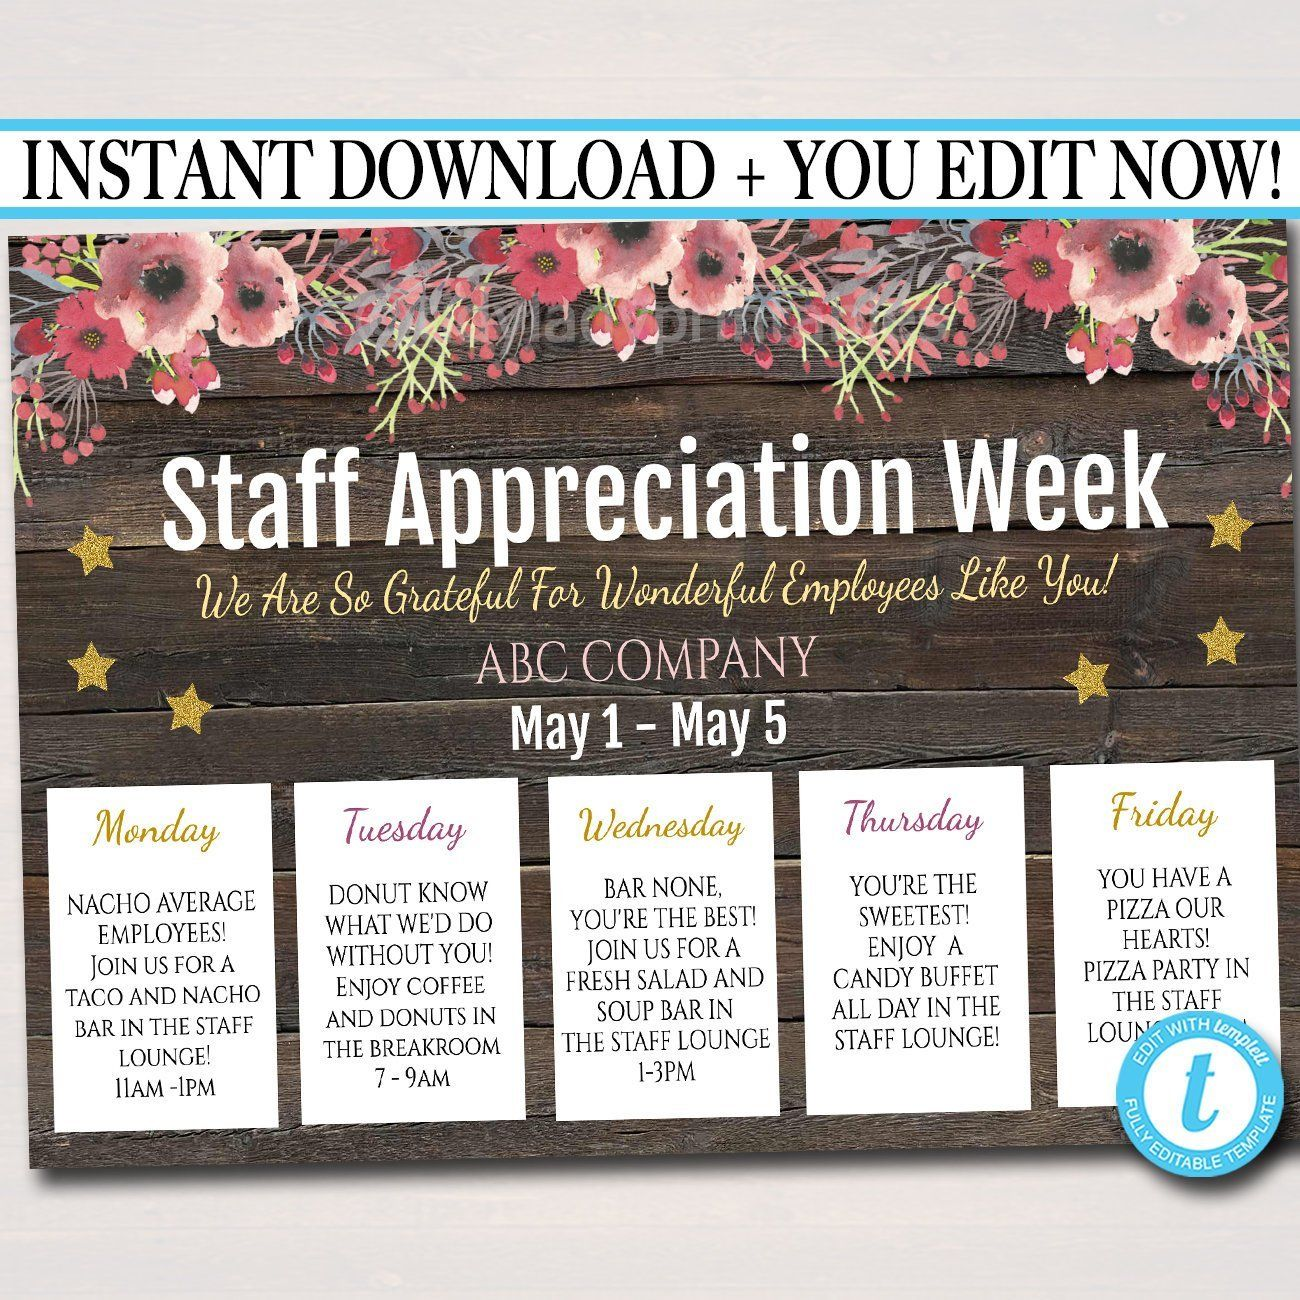 Staff Appreciation Week Itinerary Poster - Appreciation Week Schedule Events, Fundraiser Printables